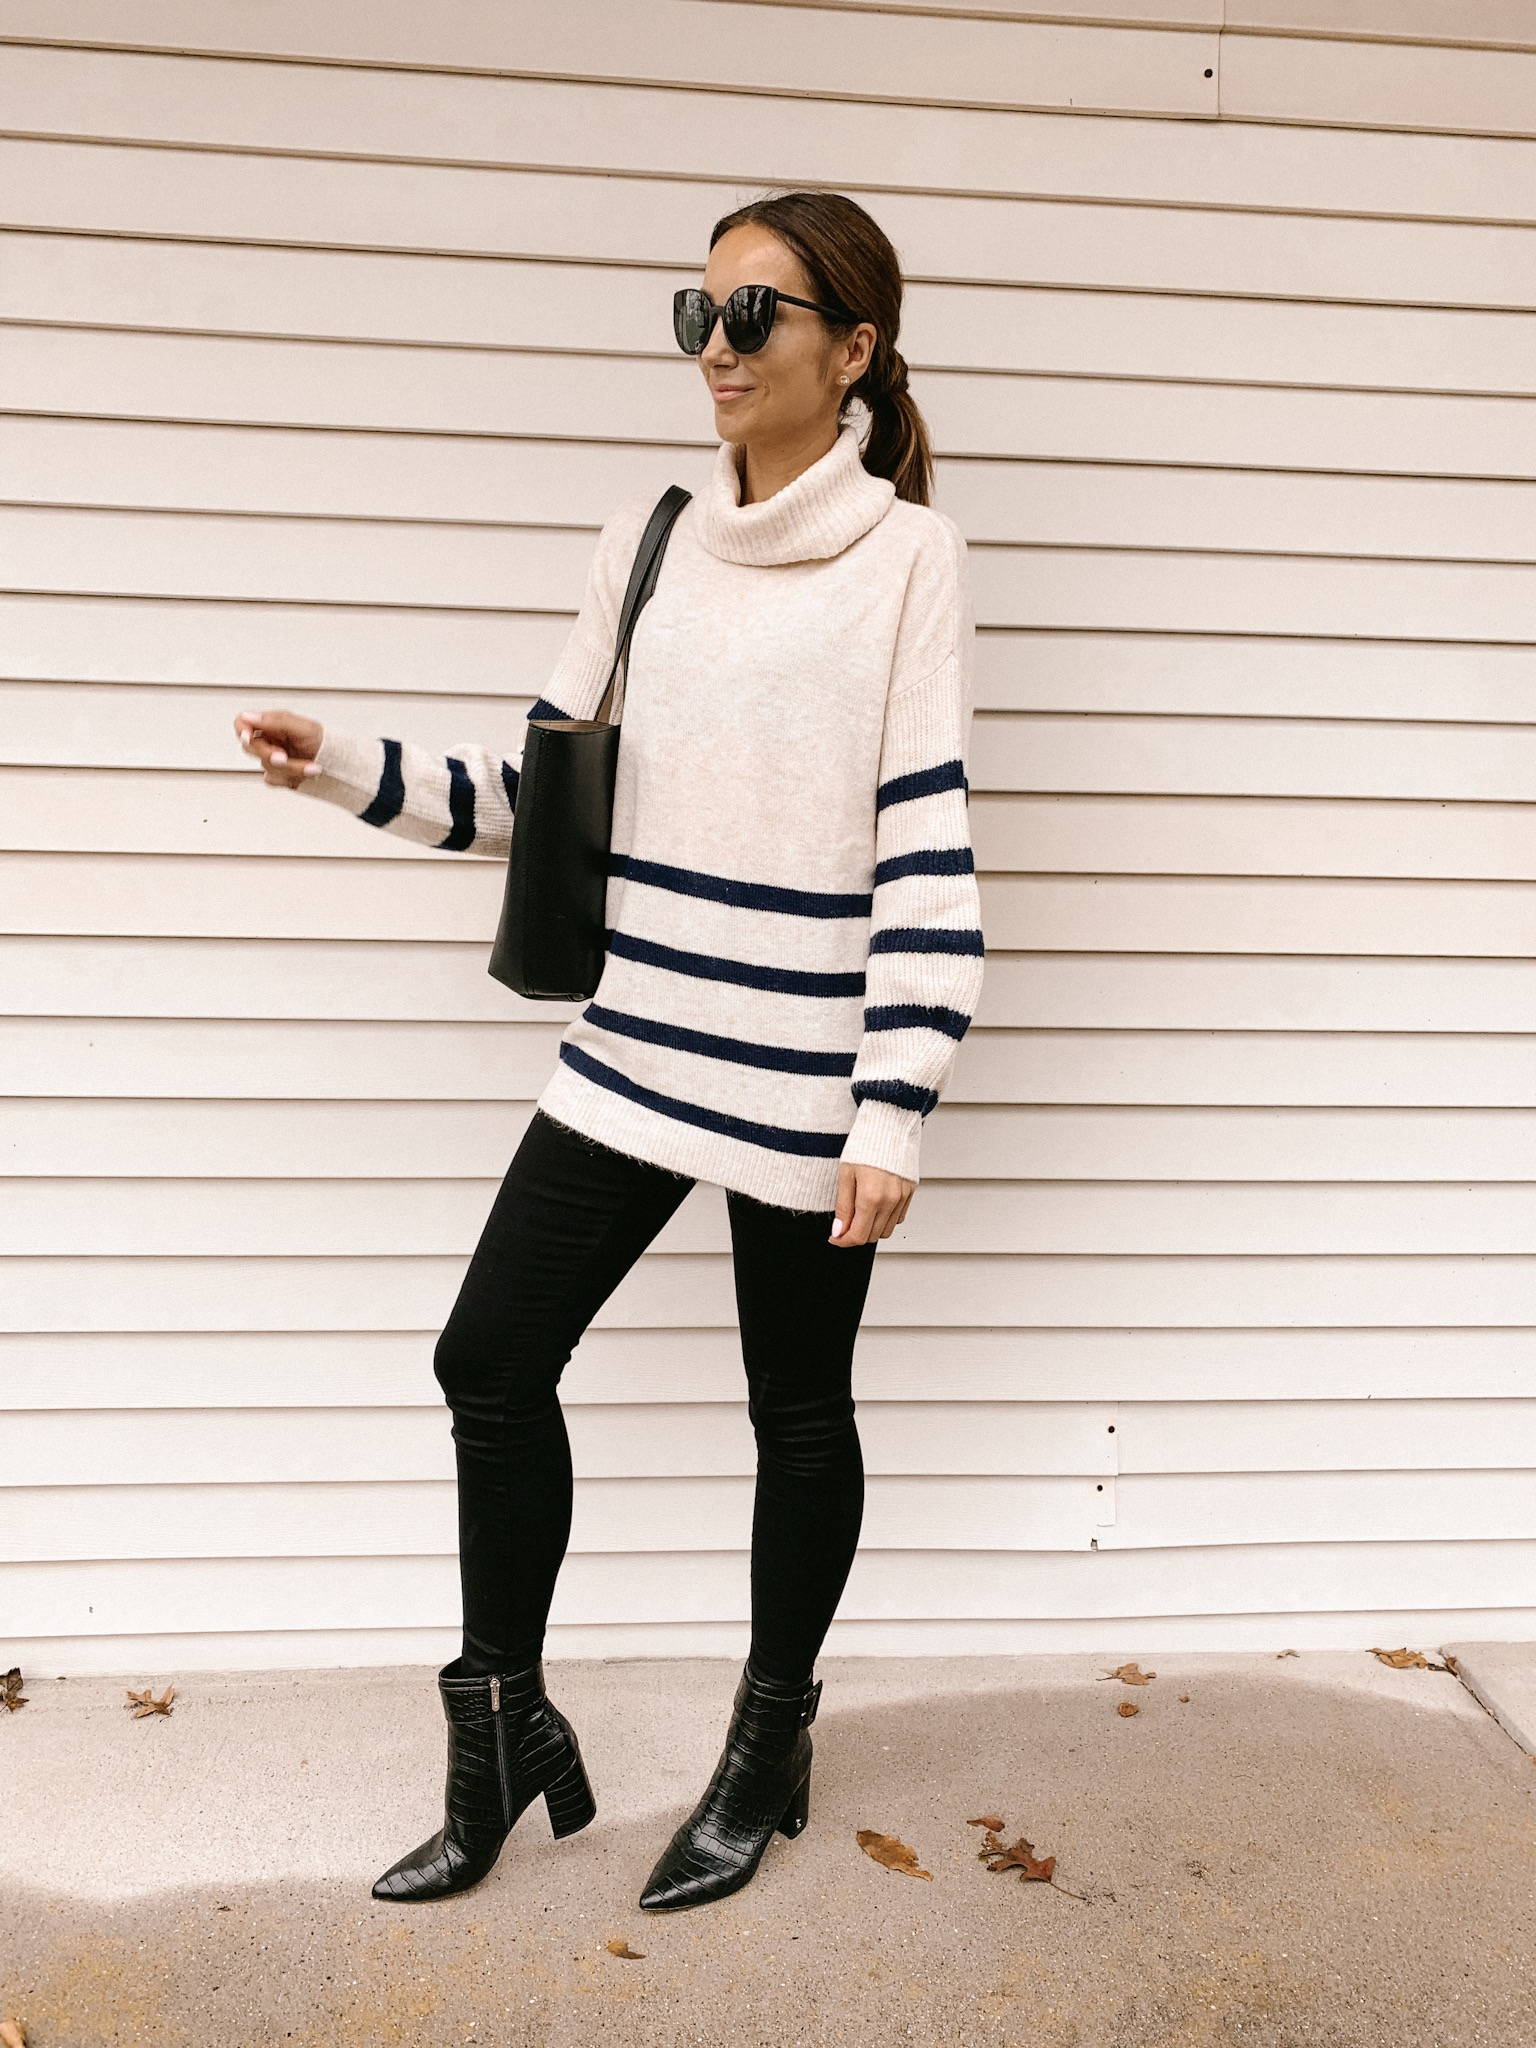 Striped sweater, jeggings, booties, totes